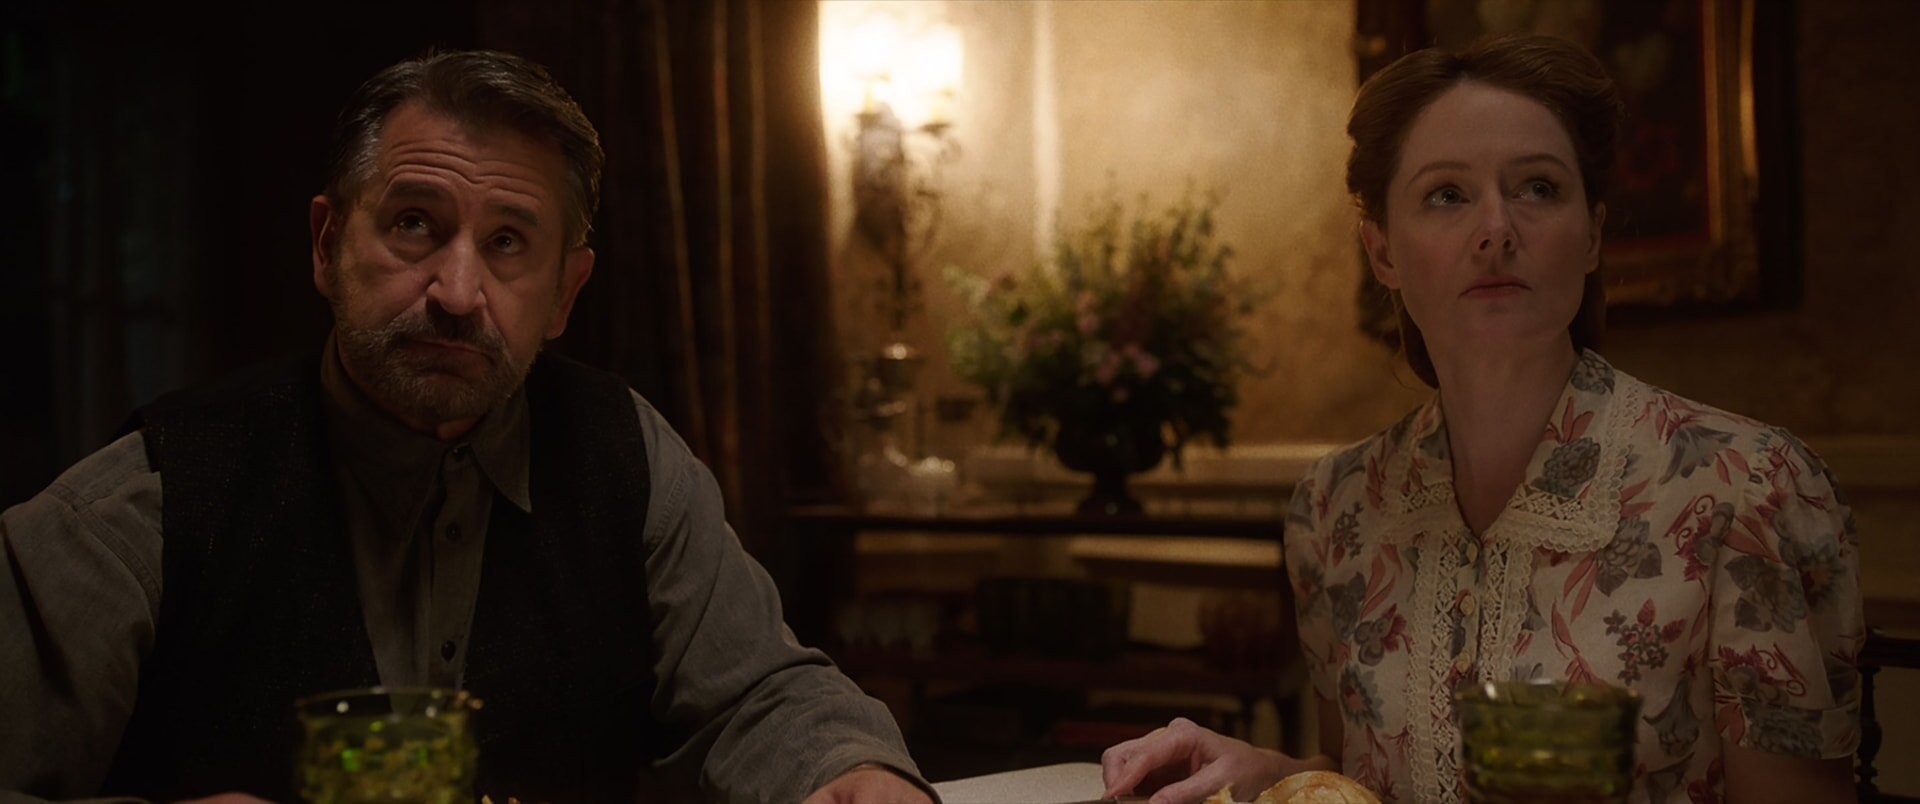 """ANTHONY LaPAGLIA as Samuel Mullins and MIRANDA OTTO as Esther Mullins in New Line Cinema's supernatural thriller """"ANNABELLE: CREATION,"""" a Warner Bros. Pictures release."""